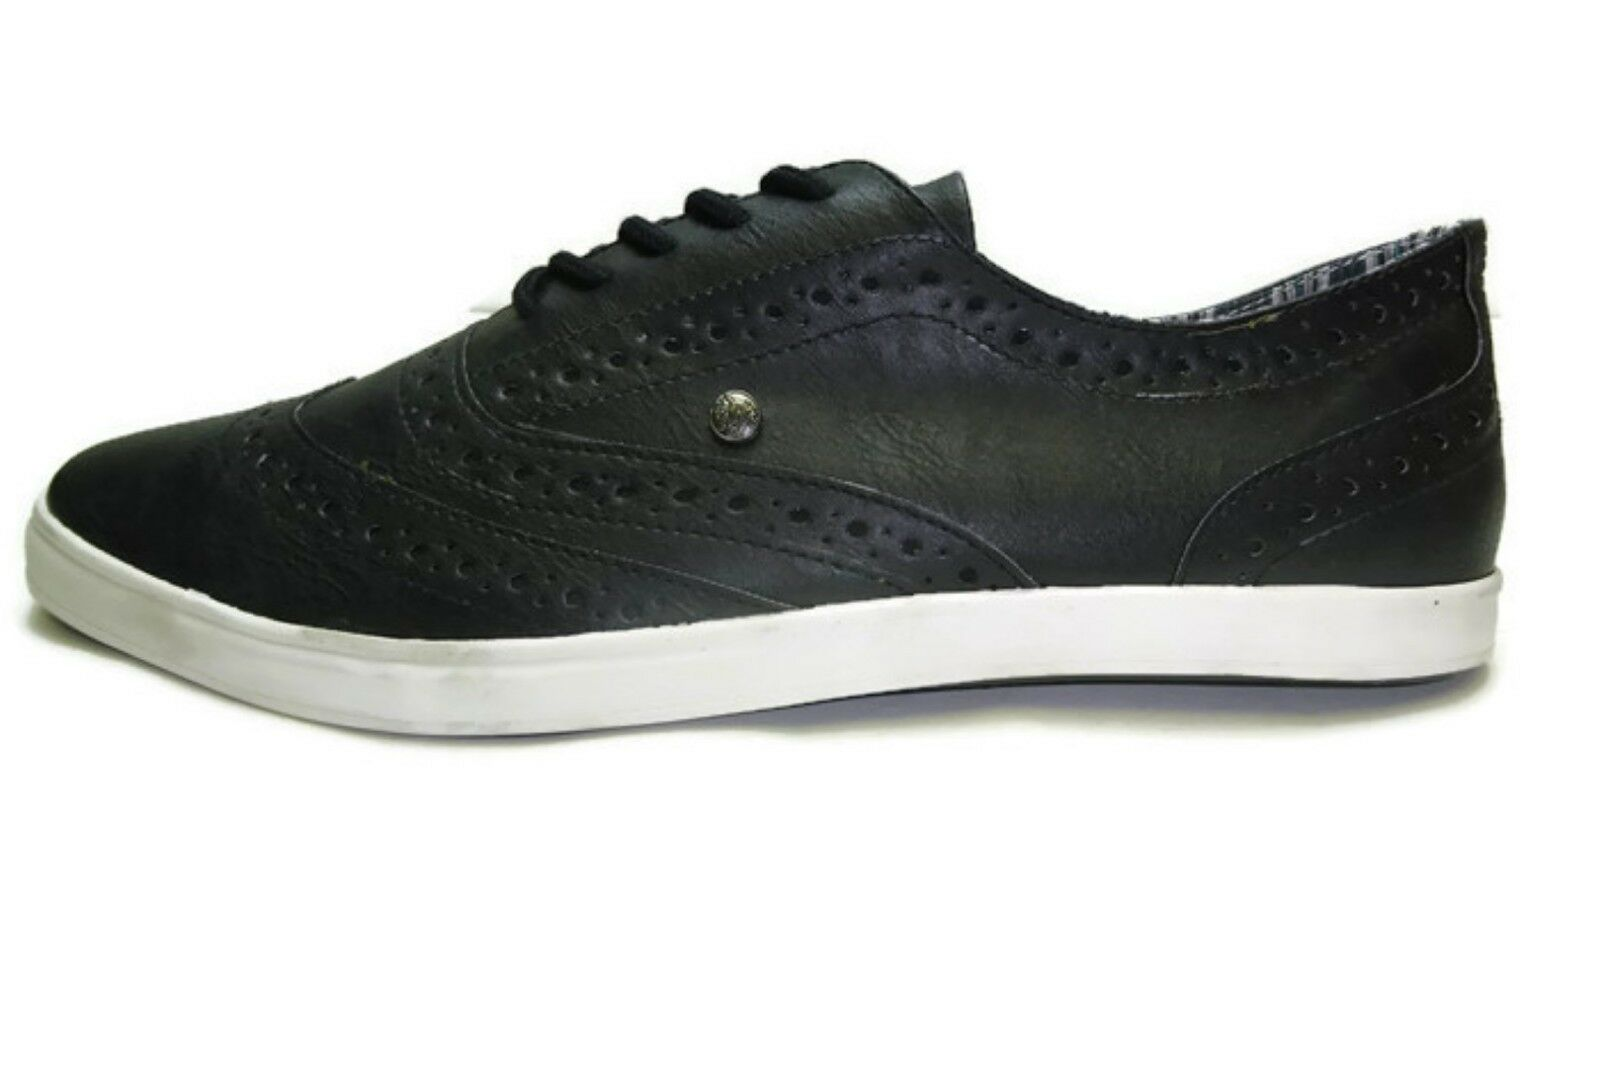 GXAARON BY Guess mens shoes Synthetic Black size 11 M